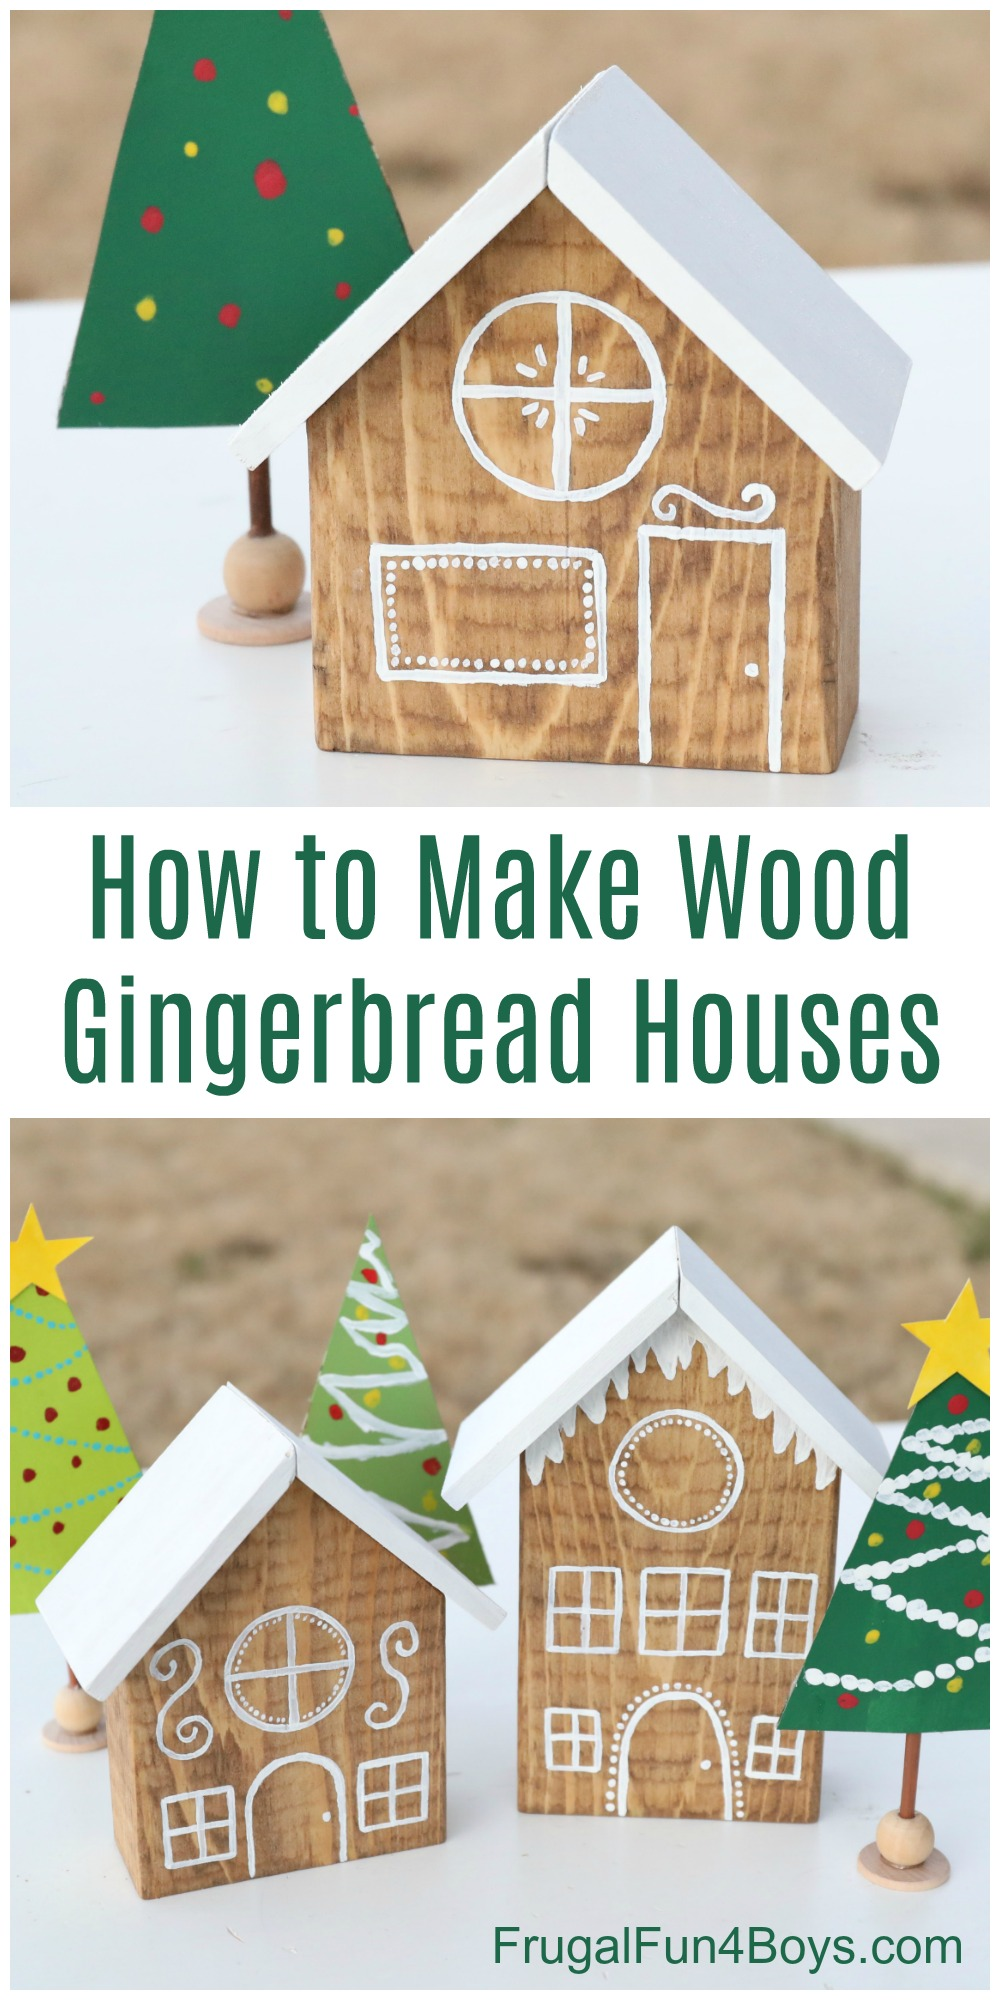 Wooden Gingerbread Houses